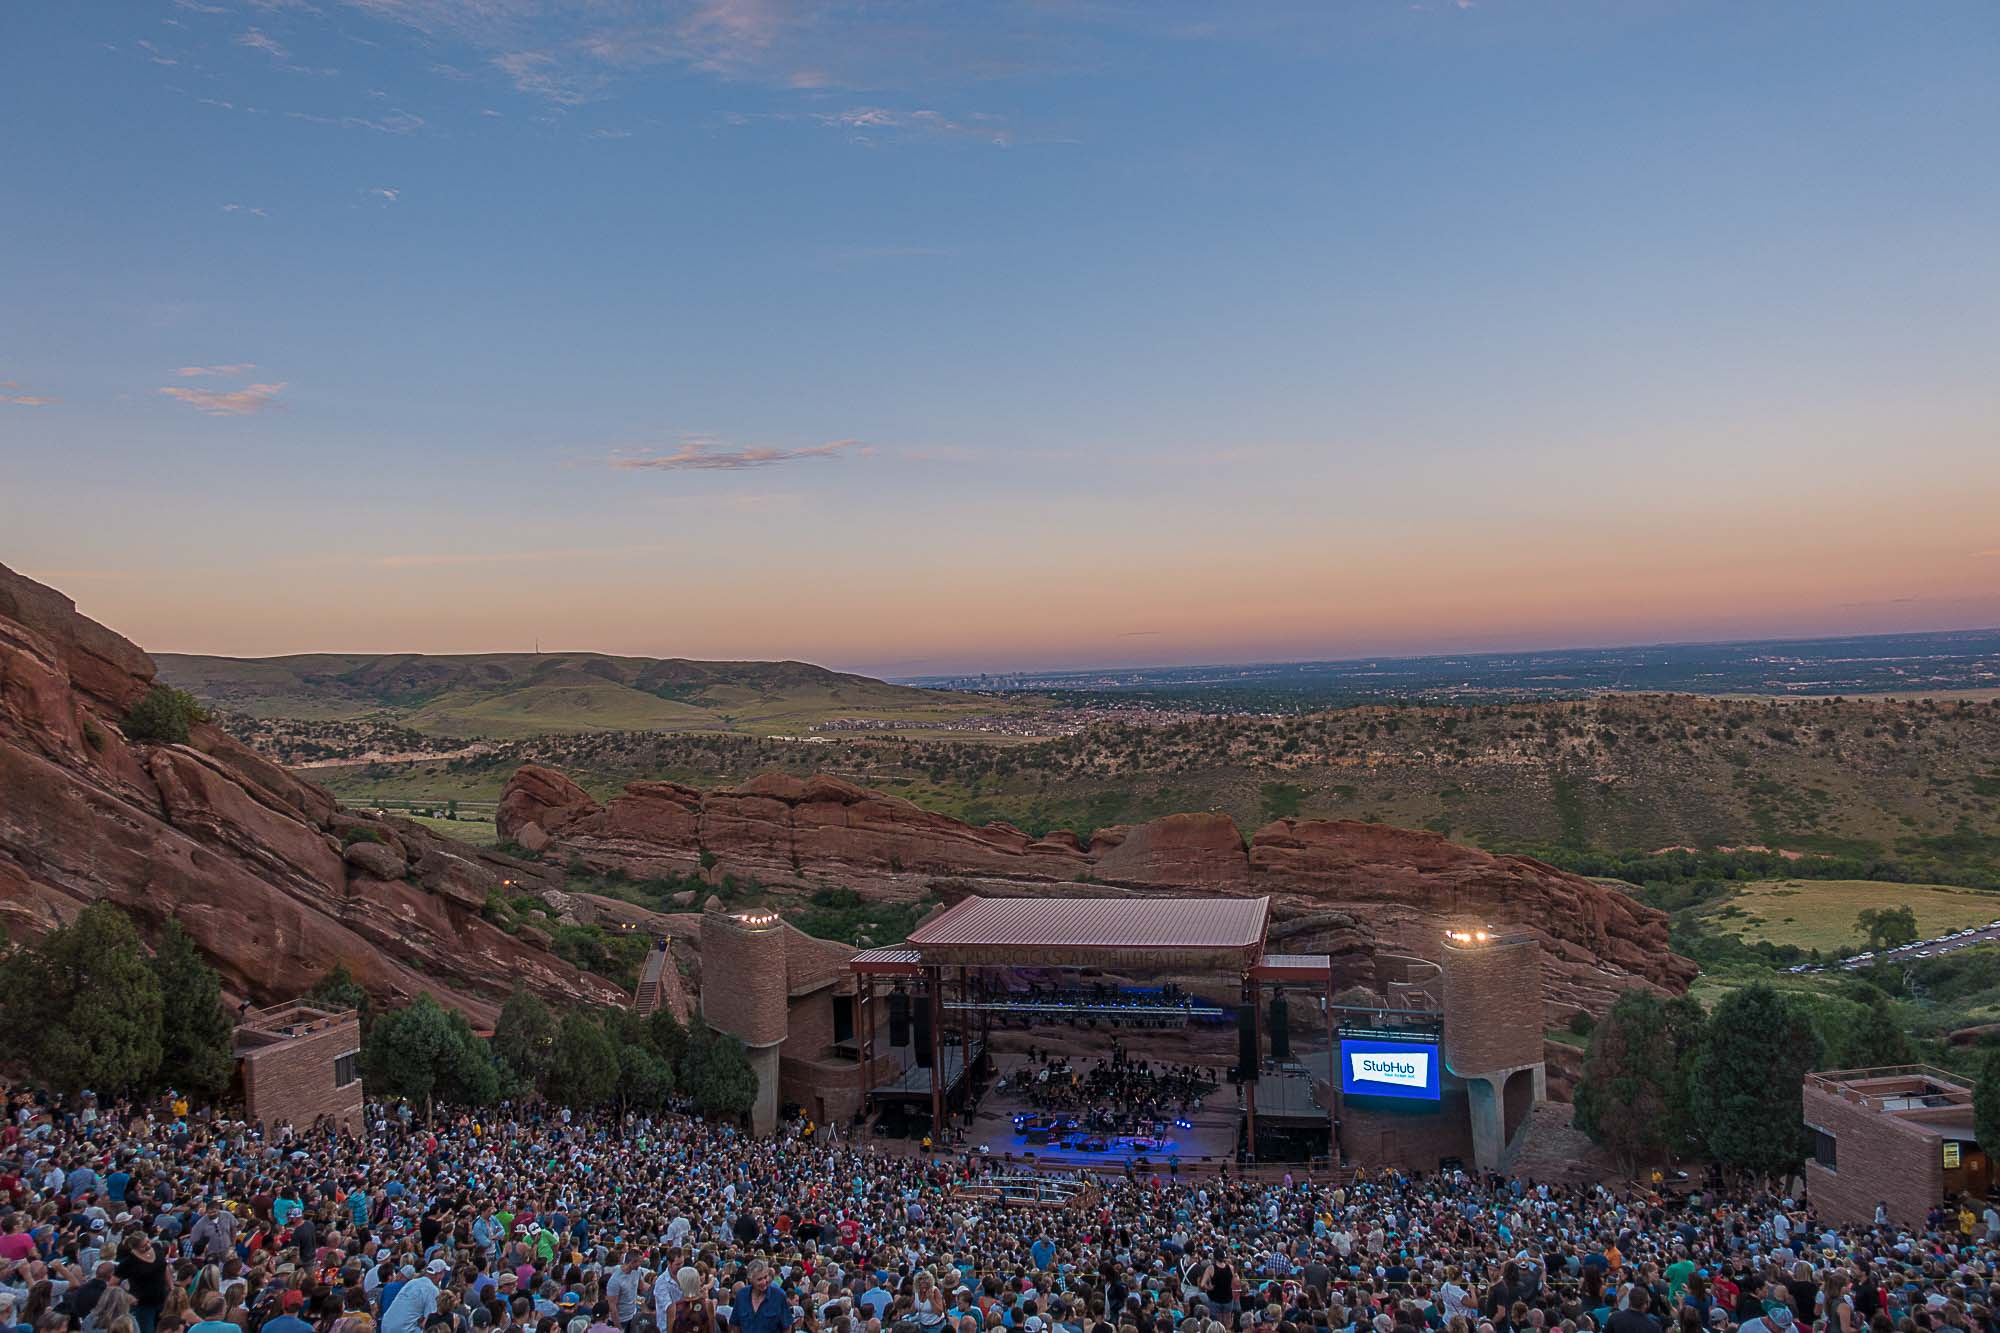 Crowd at Red Rocks outside of Denver, Colorado.